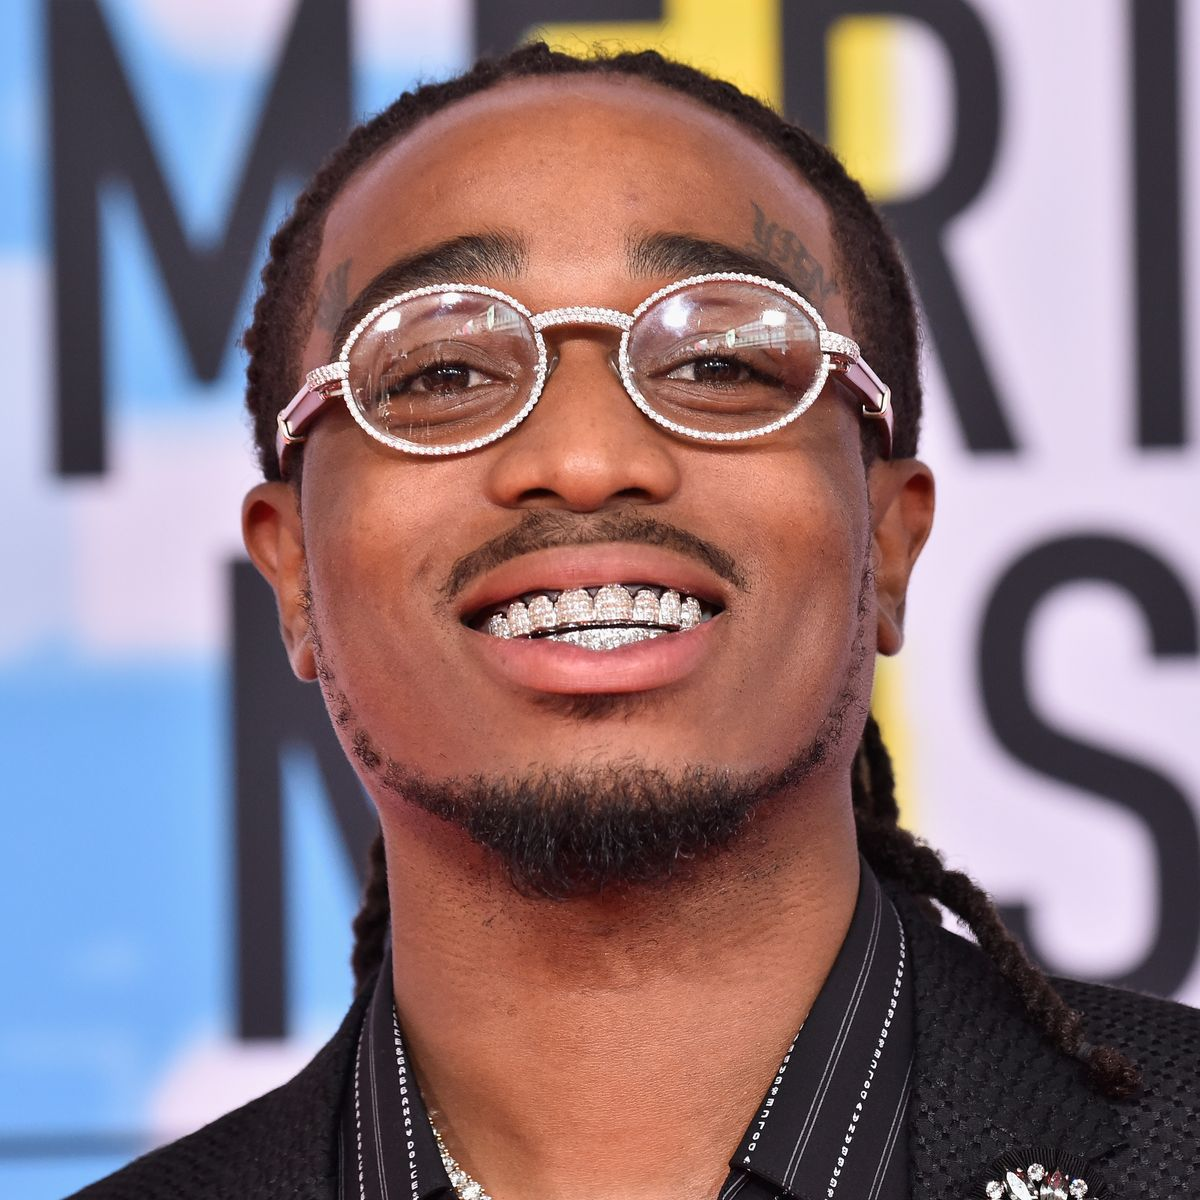 Rapper Quavo Finally Graduates From High School